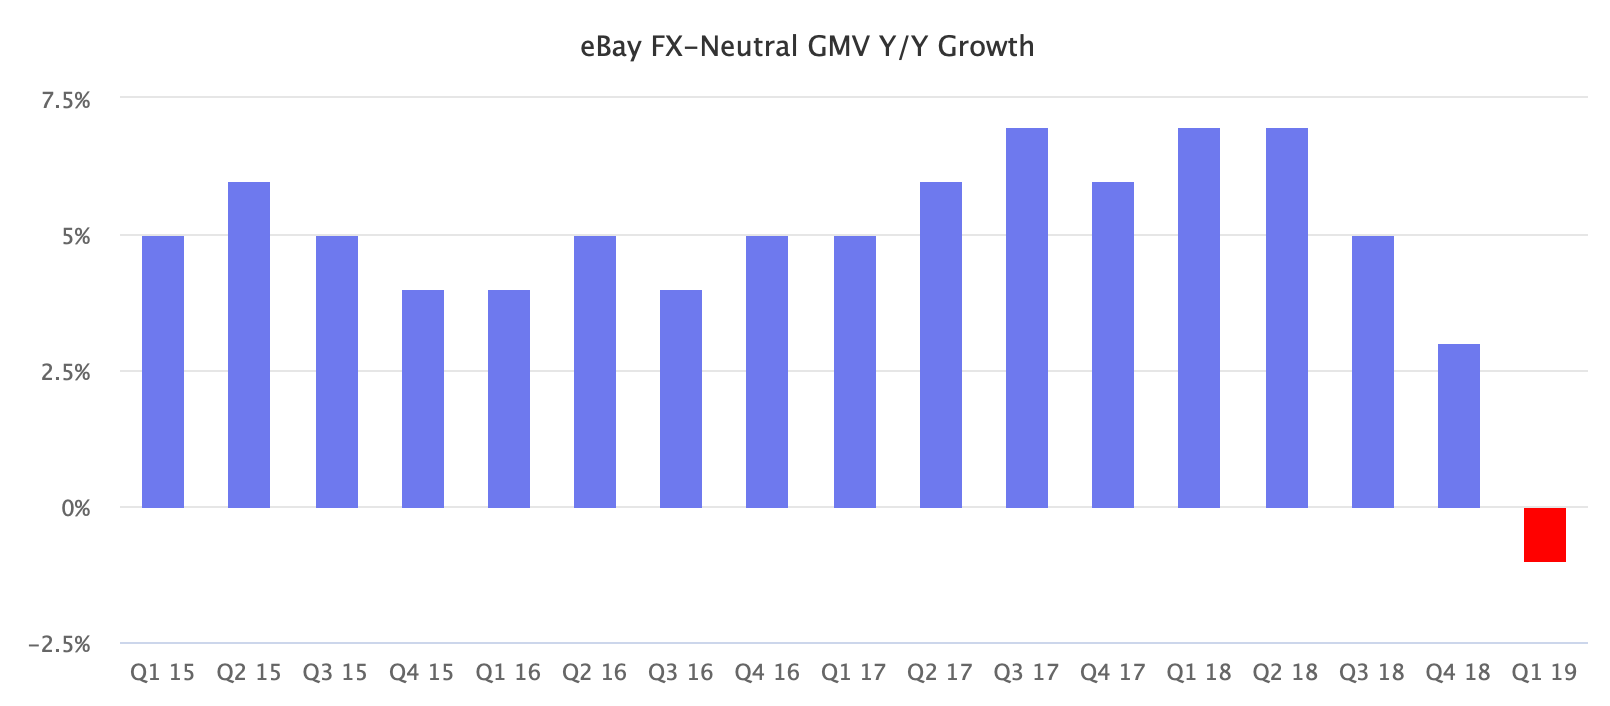 eBay FX-Neutral GMV Y/Y Growth